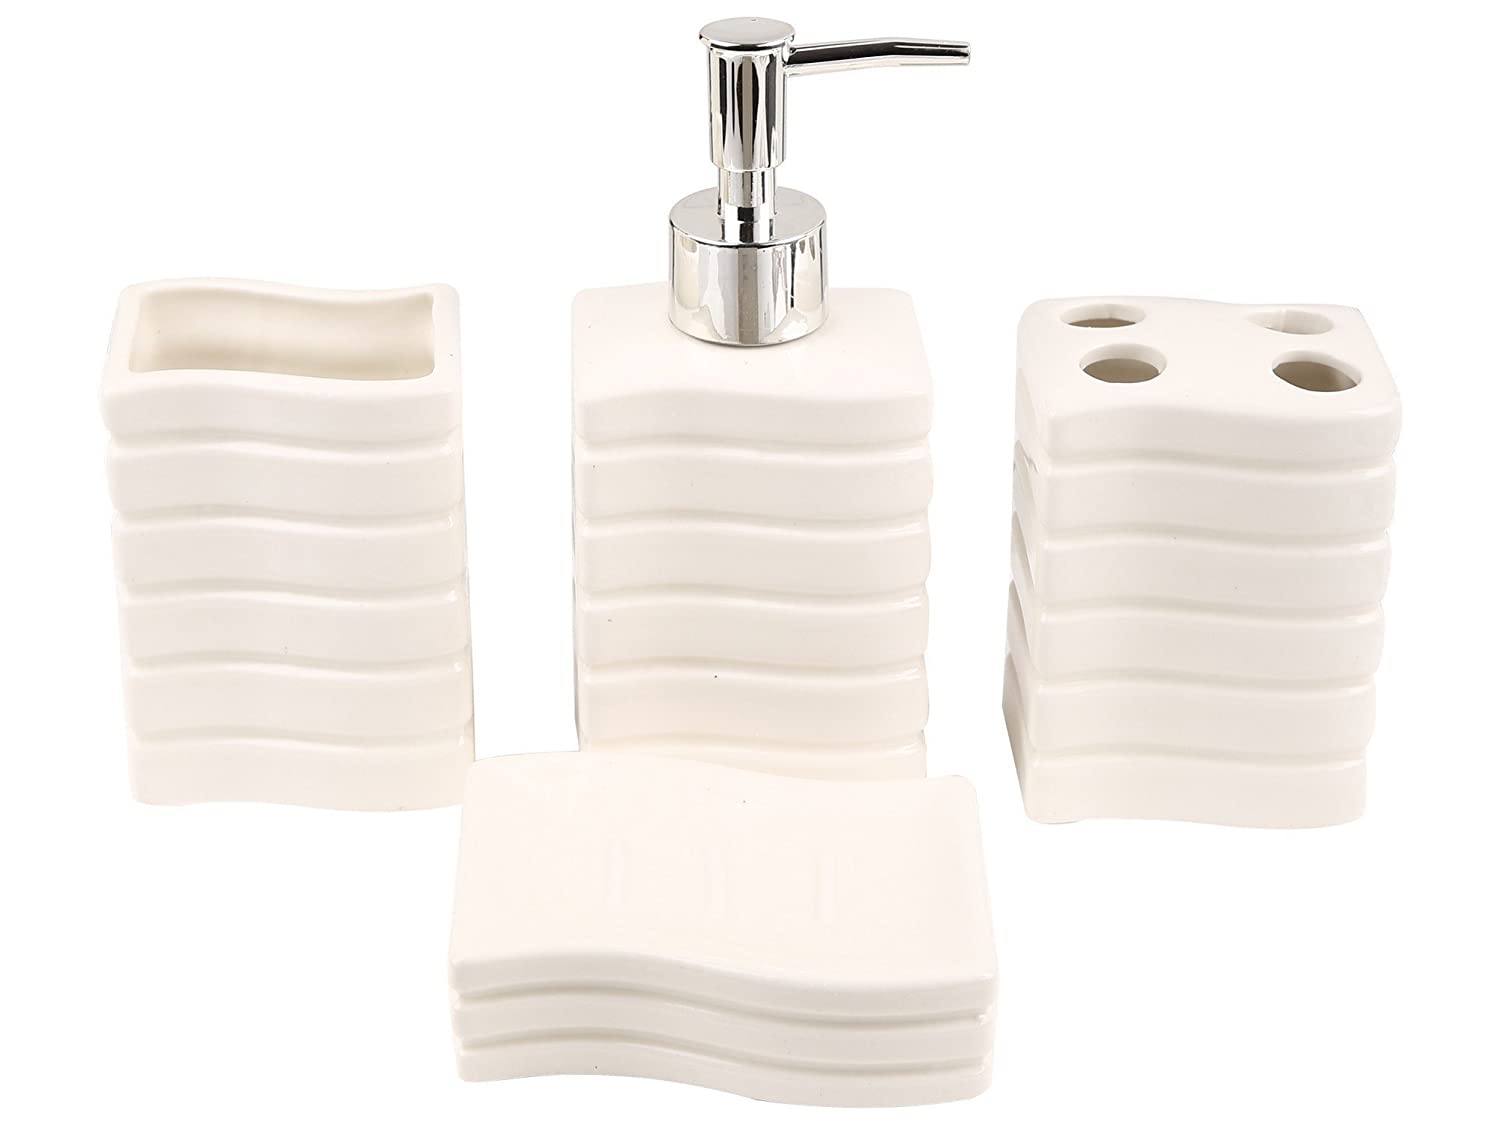 Upto 60% Off On Bathroom Accessories By Amazon | Miamour 4 Piece Ceramic Bathroom Accessory Set, White (MMCBSWW001004) @ Rs.499